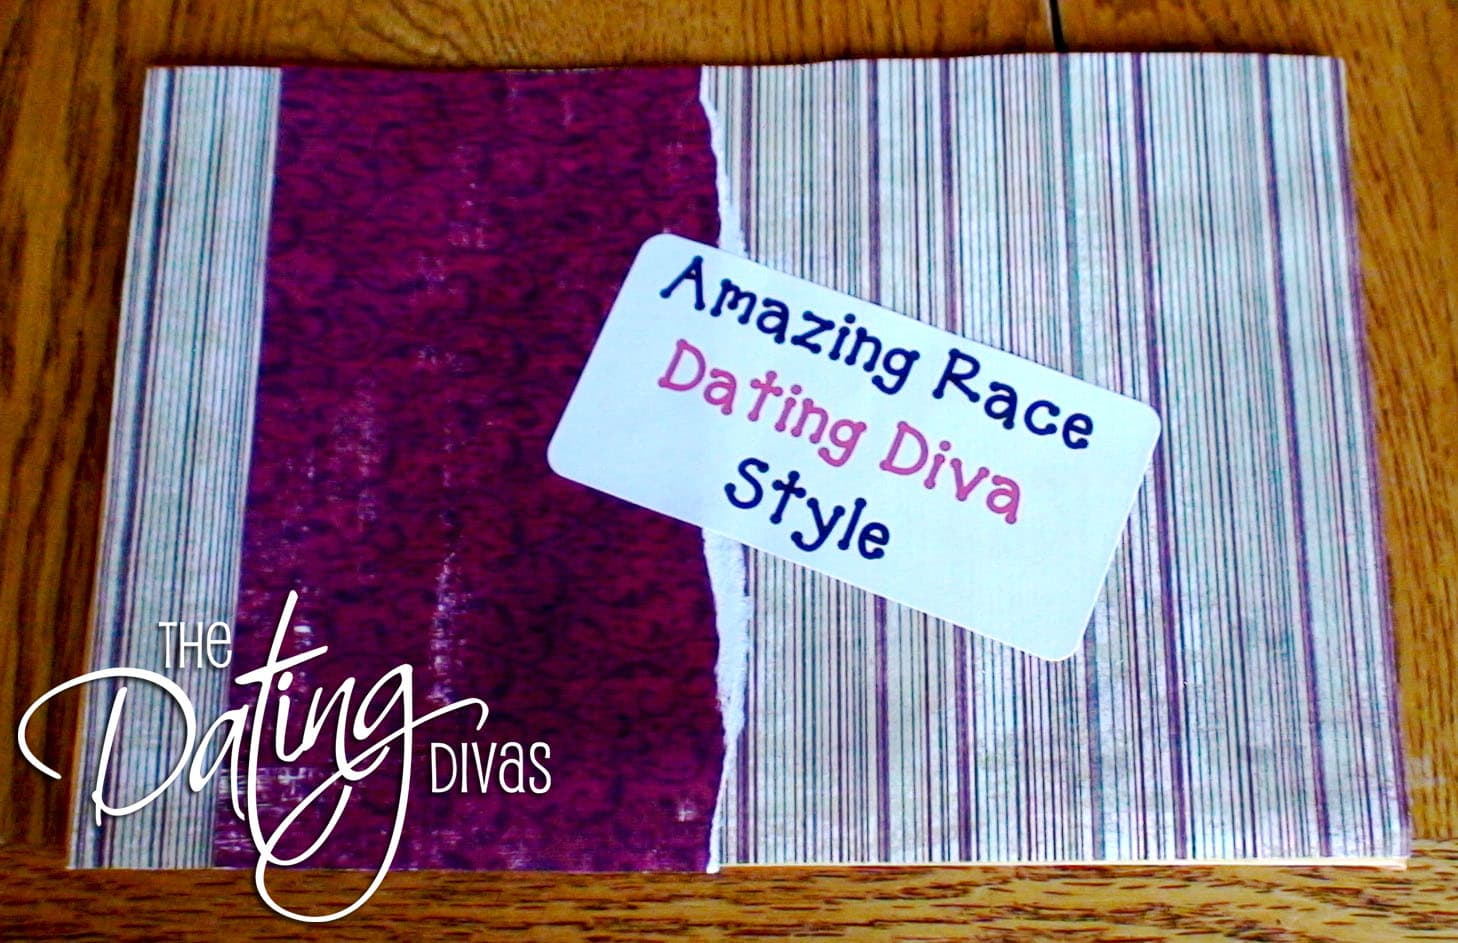 the dating divas amazing race Everything you need (and more) to host your very own version of the amazing race includes amazing race challenges and clues that can apply to any hometown.